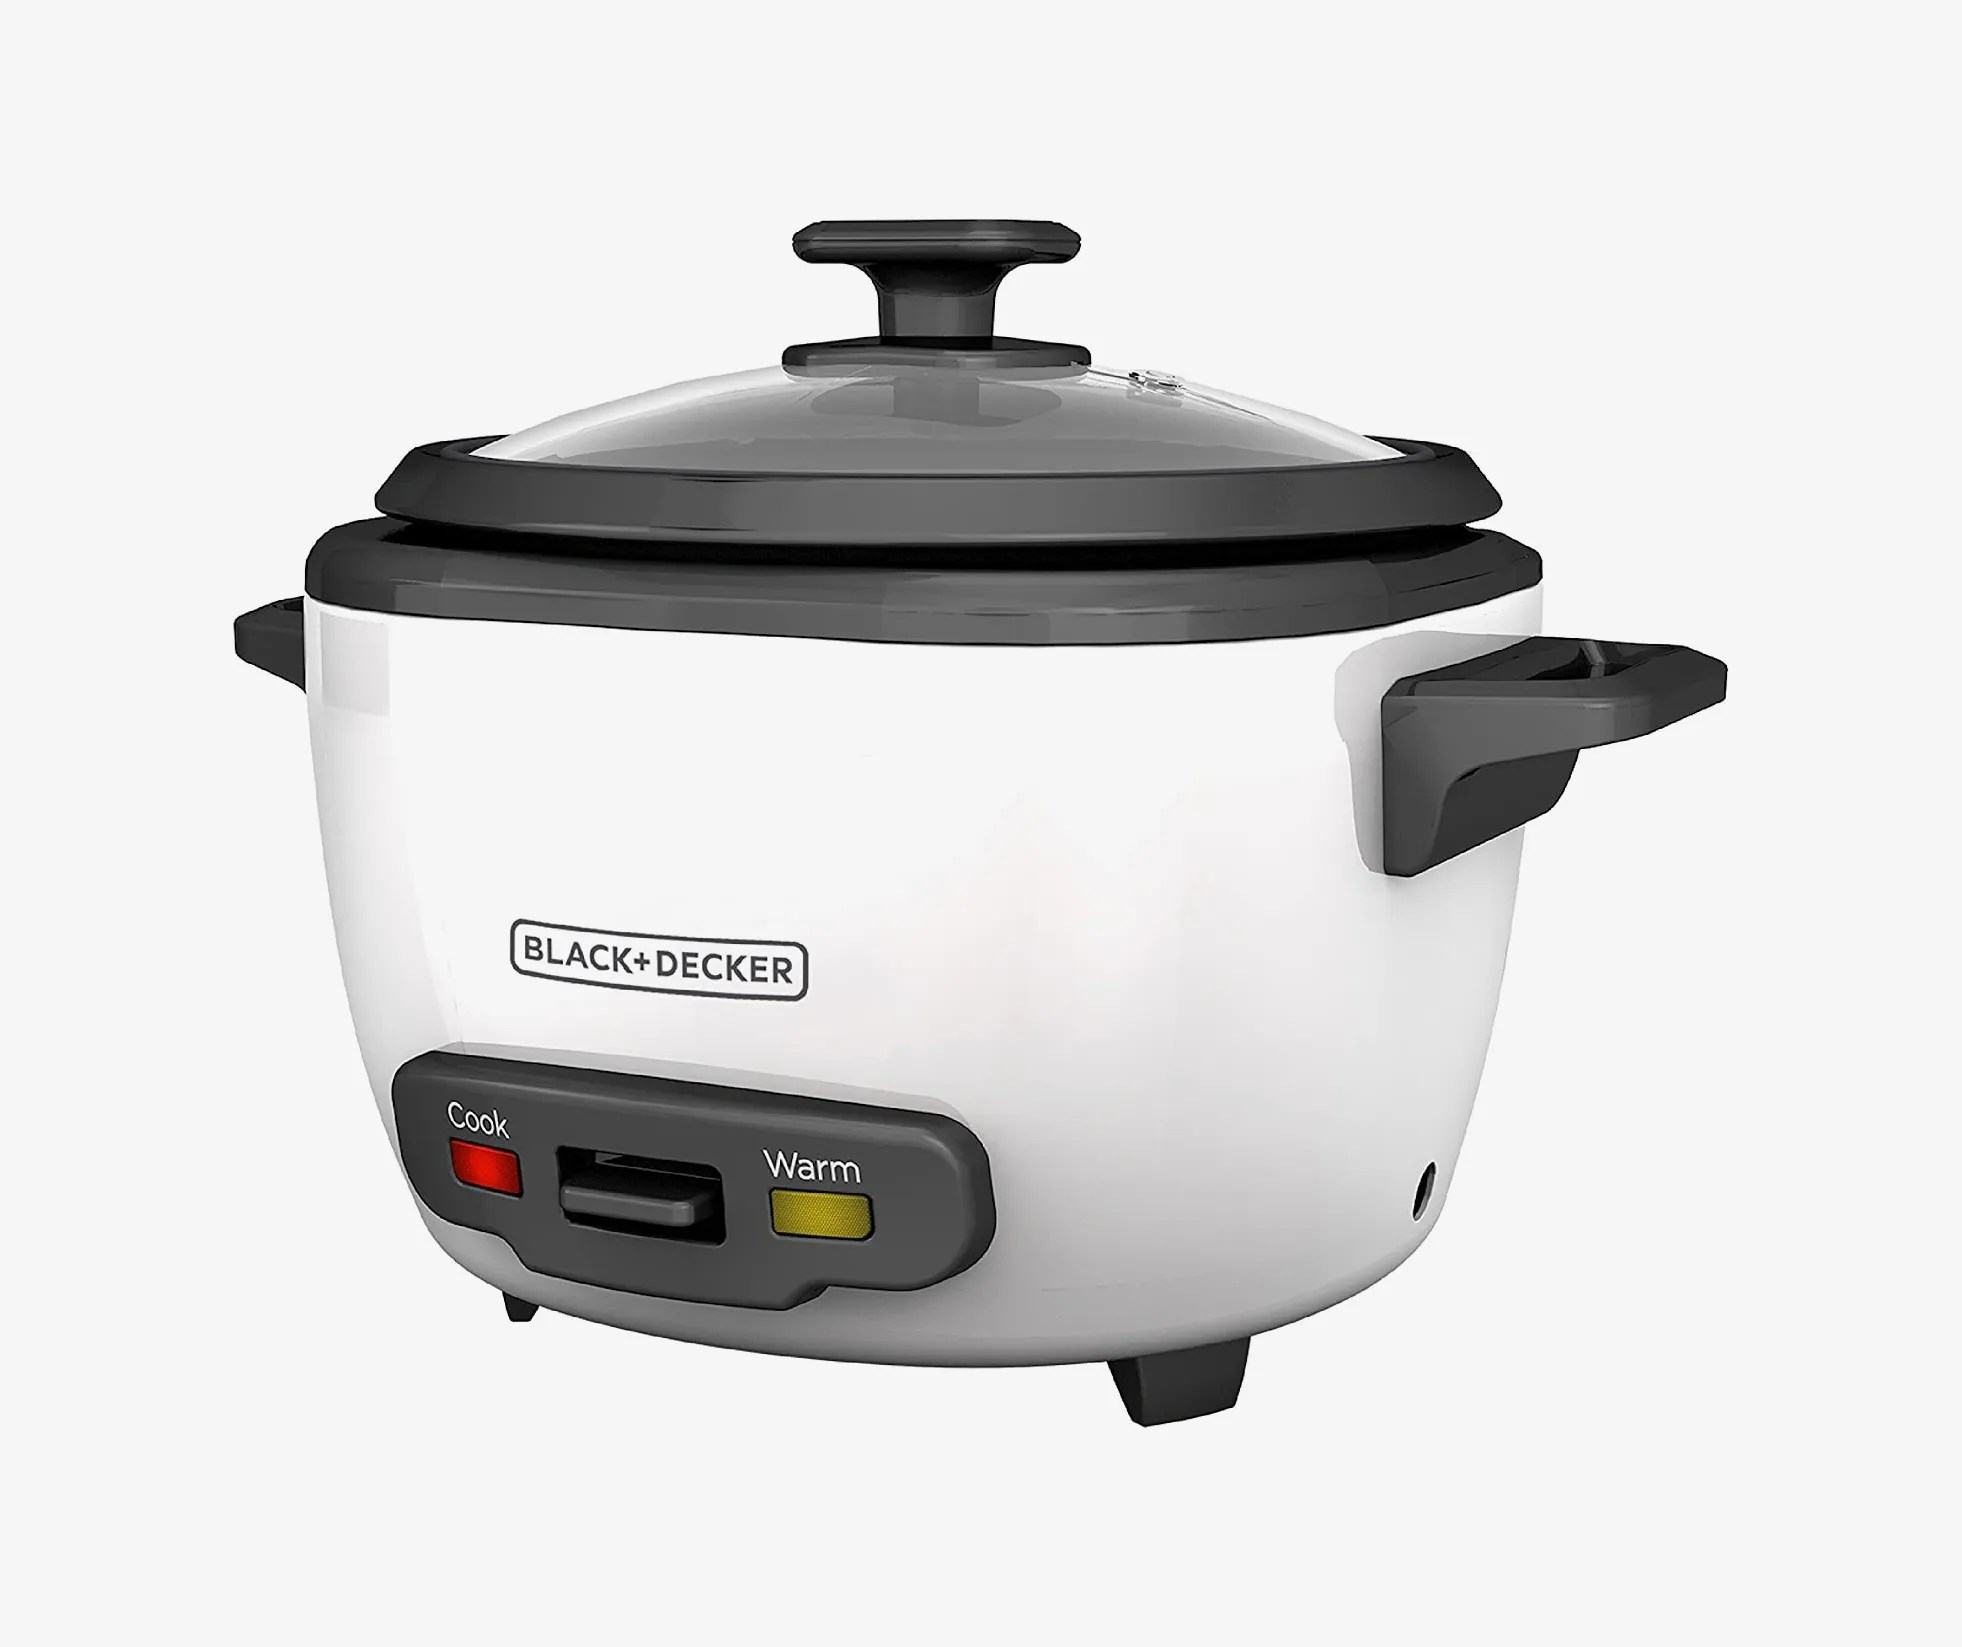 https nymag com strategist article best rice cookers html